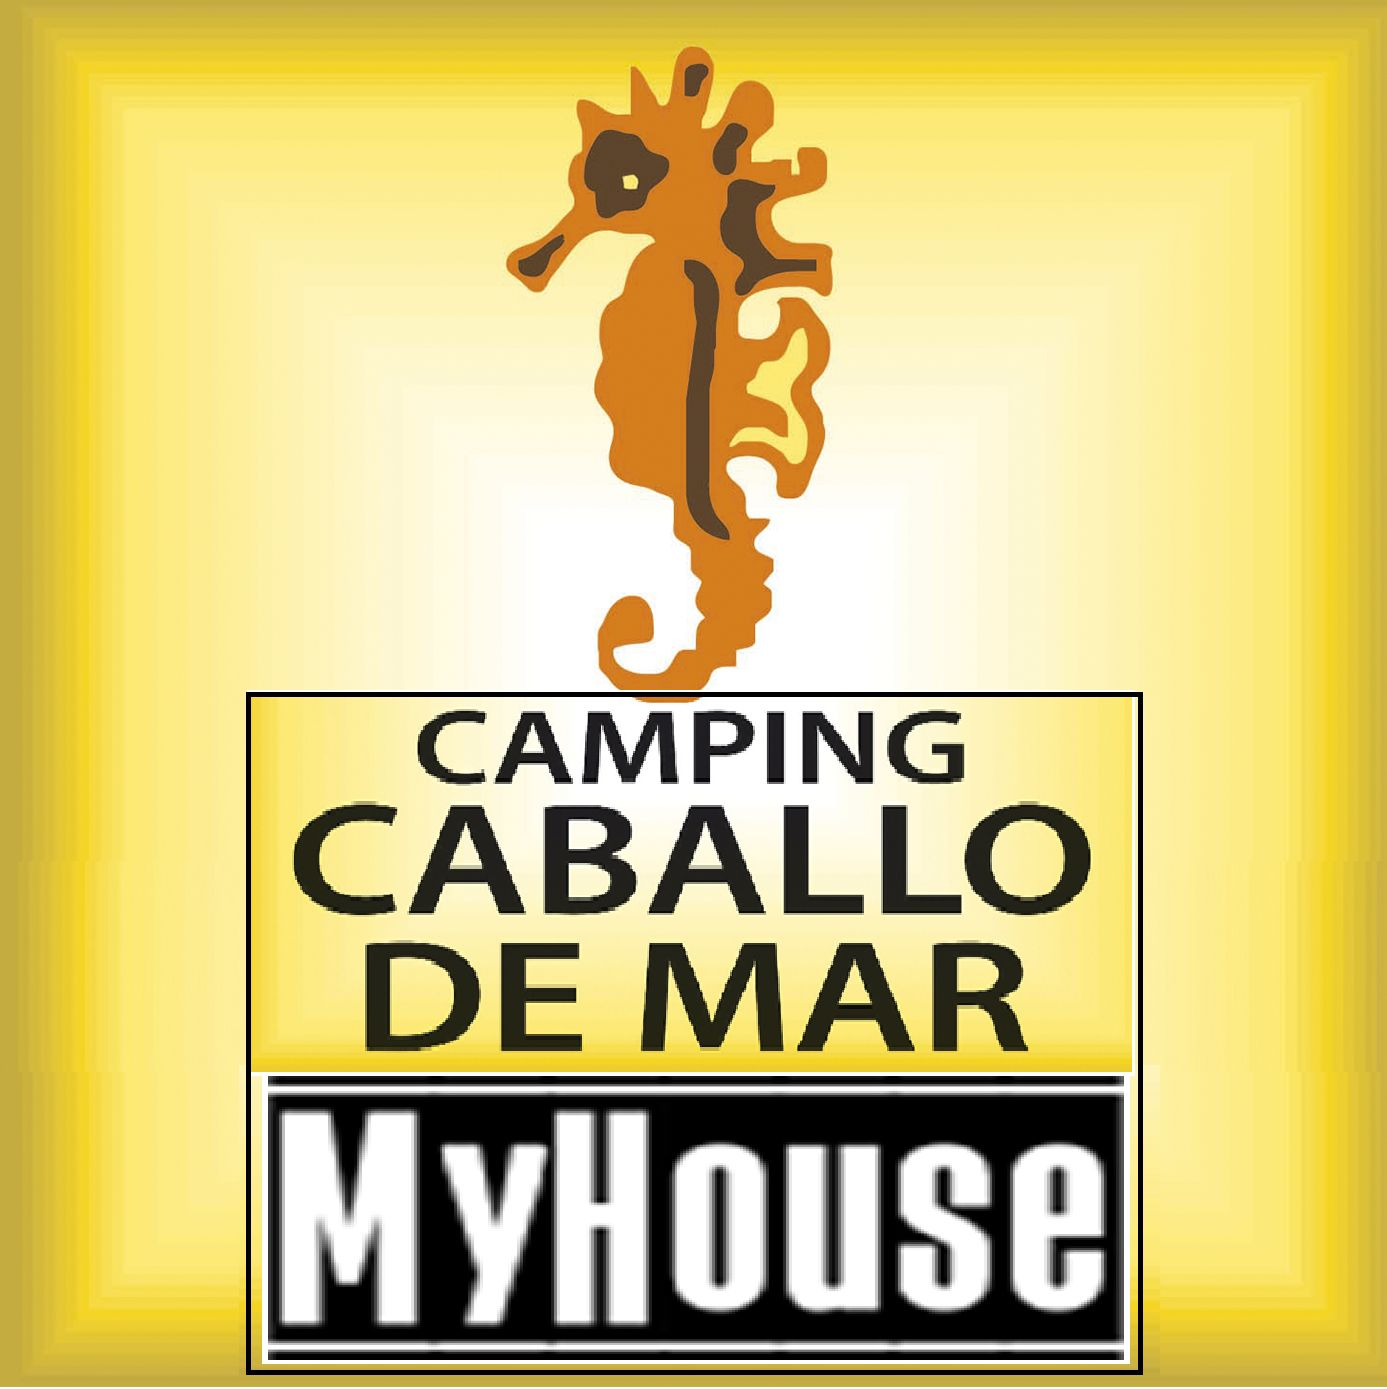 Myhouse camping caballo de mar for Www myhouse com